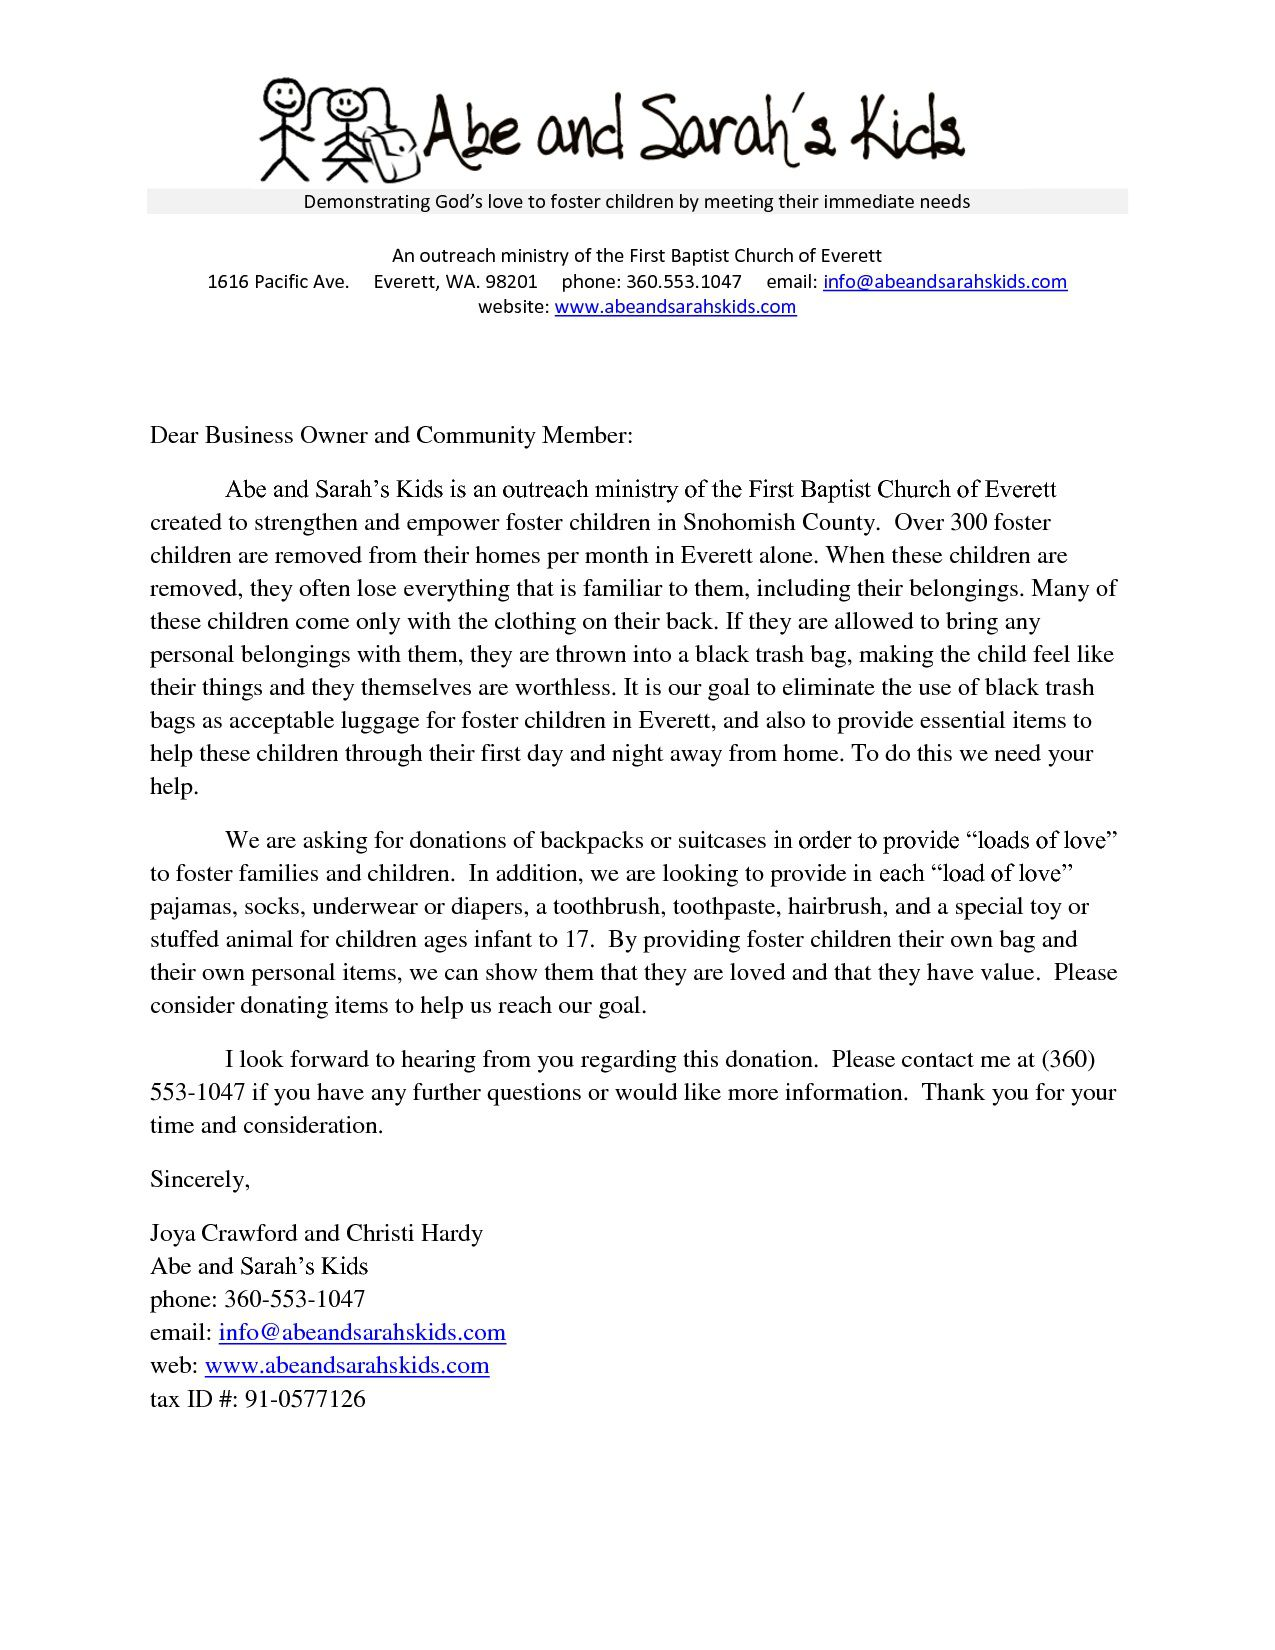 002 Stunning Fund Raising Letter Template Design  Templates Example Of Fundraising Appeal For Mission Trip UkFull